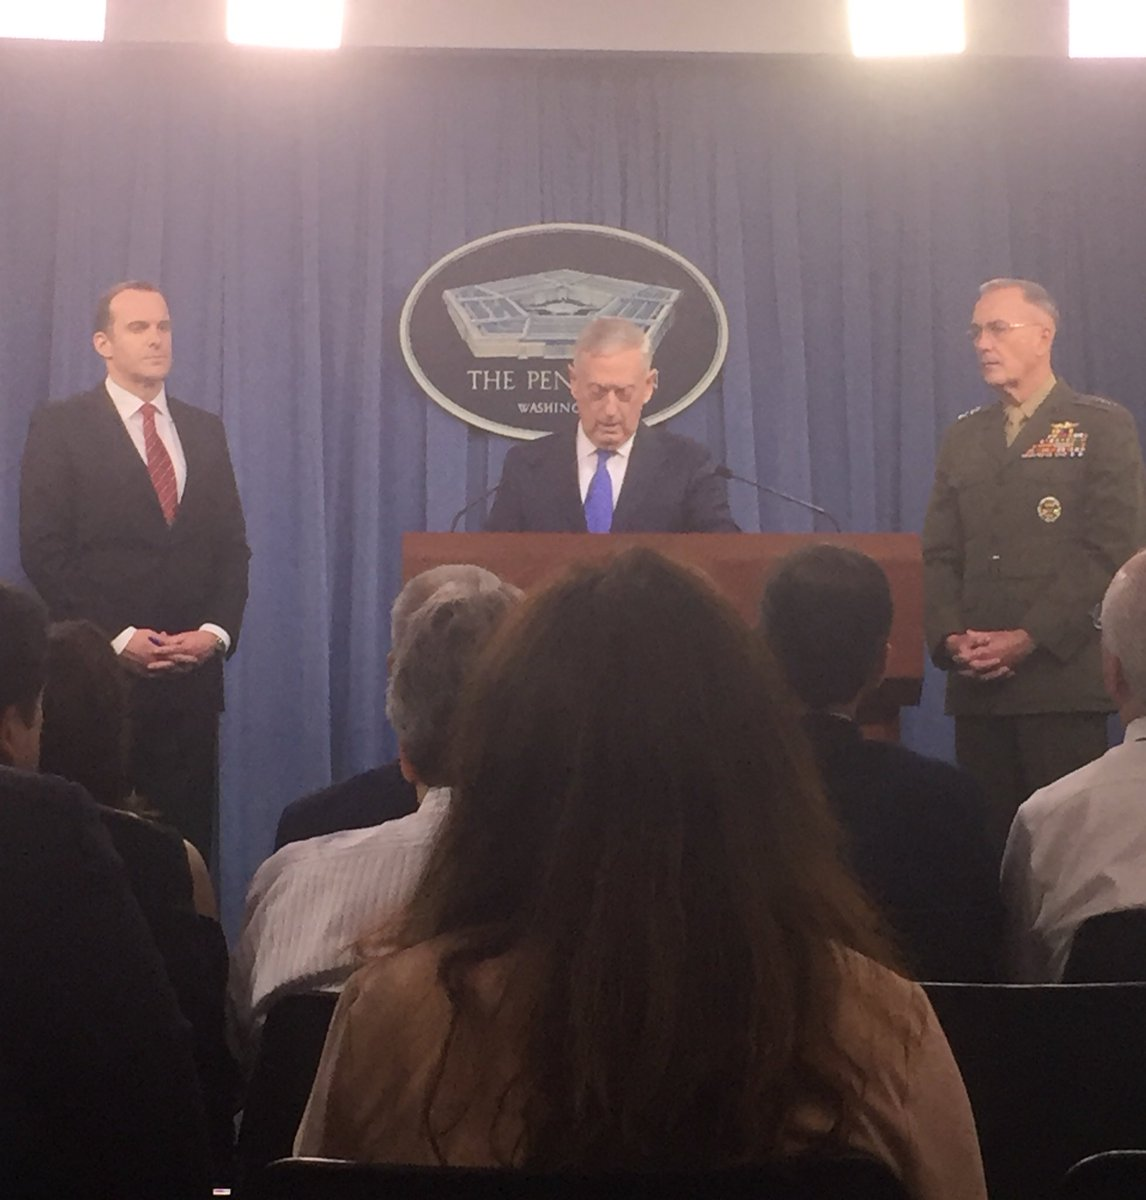 No change to DoD rules of engagement nor civilian casualty process in moving forward with anti-ISIS plan, #secdef Mattis says @ Pentagon <br>http://pic.twitter.com/DW4Hs6ckXh